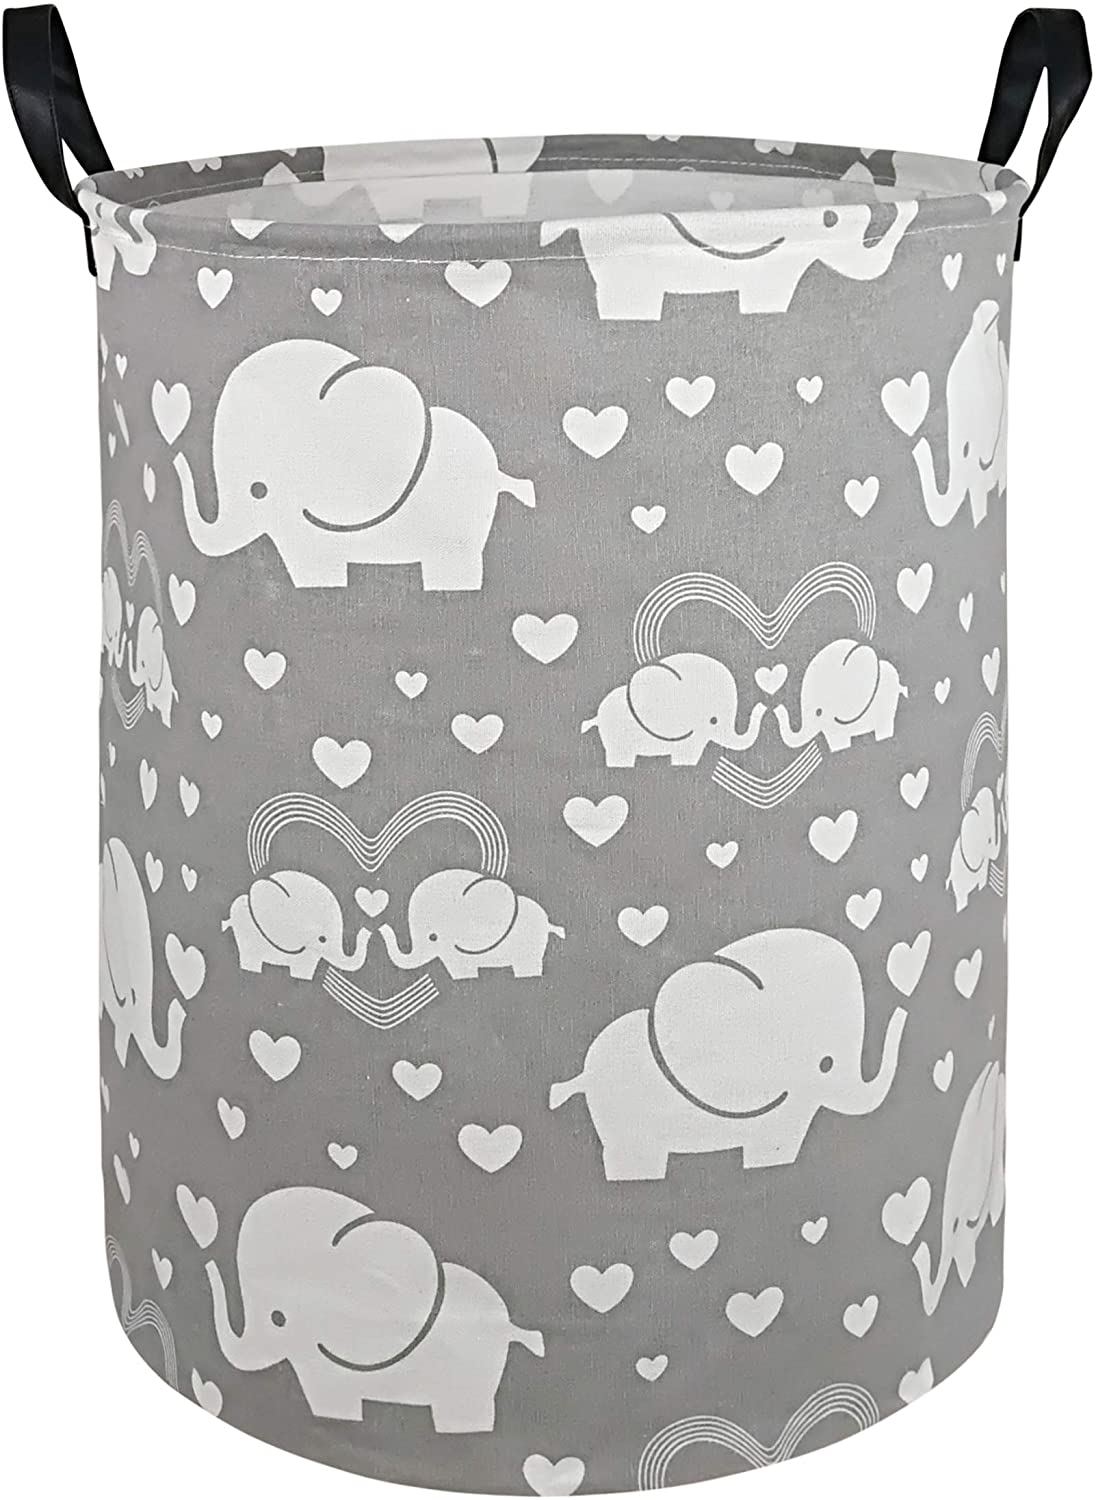 DUYIY Canvas Storage Basket with Handle Large Organizer Bins for Dirty Laundry Hamper Baby Toys Nursery Kids Clothes Gift Basket(Love Elephant)